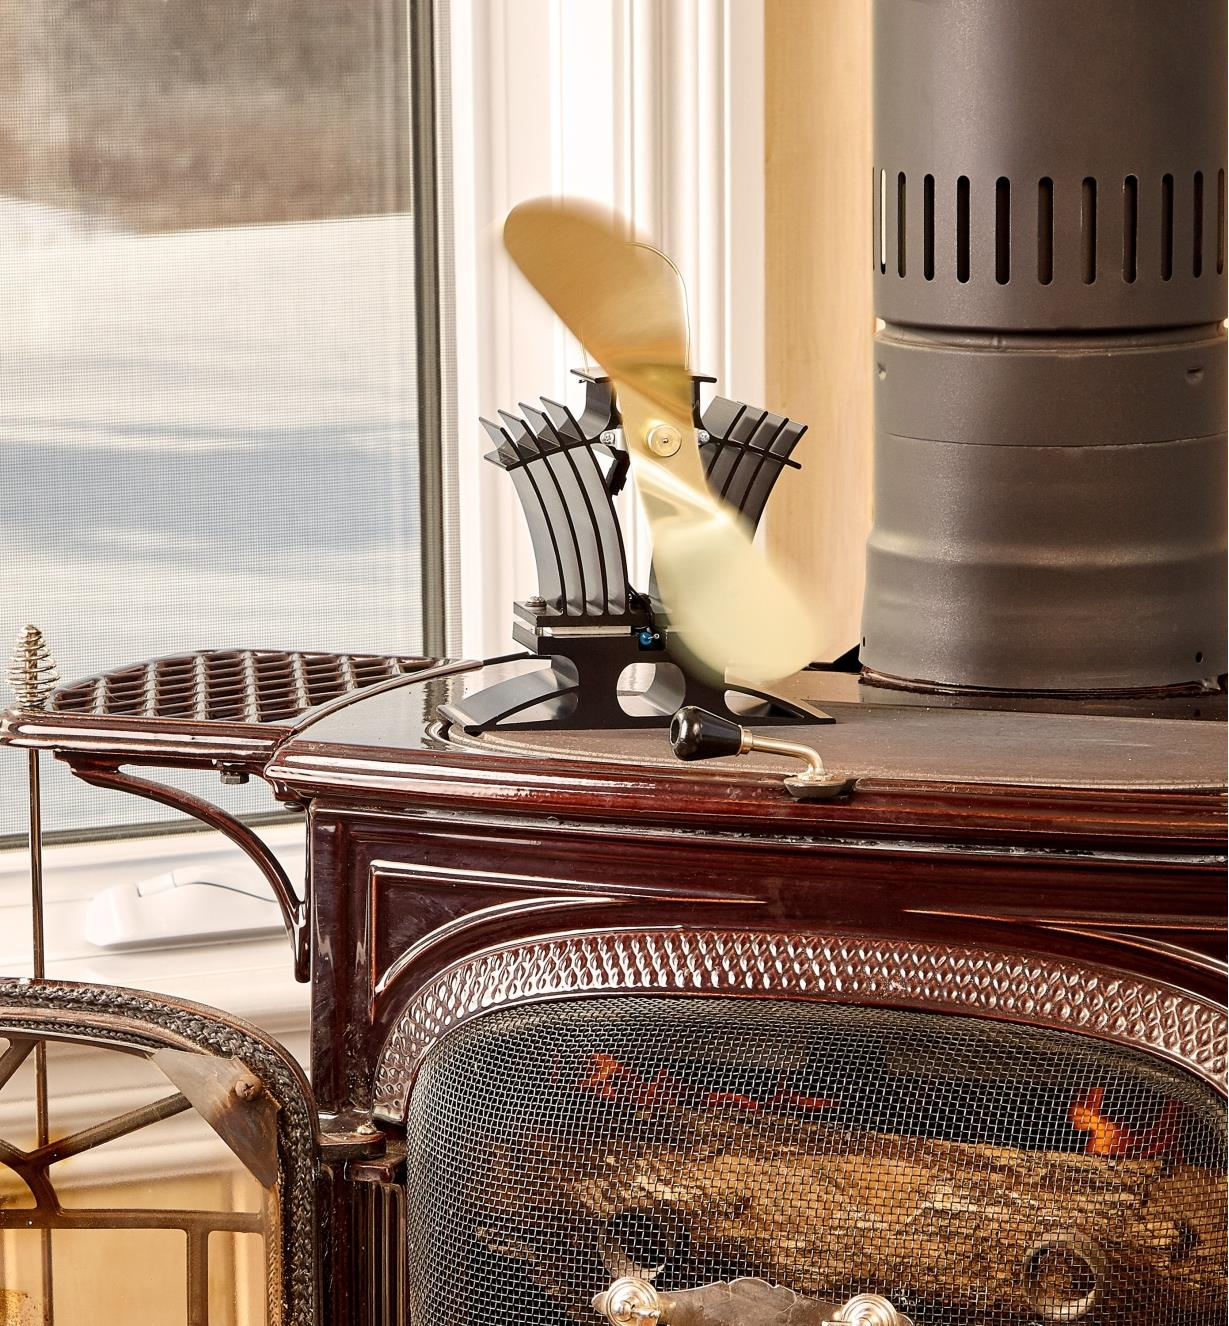 Ecofan BelAir on a wood stove, distributing the heat of the fire